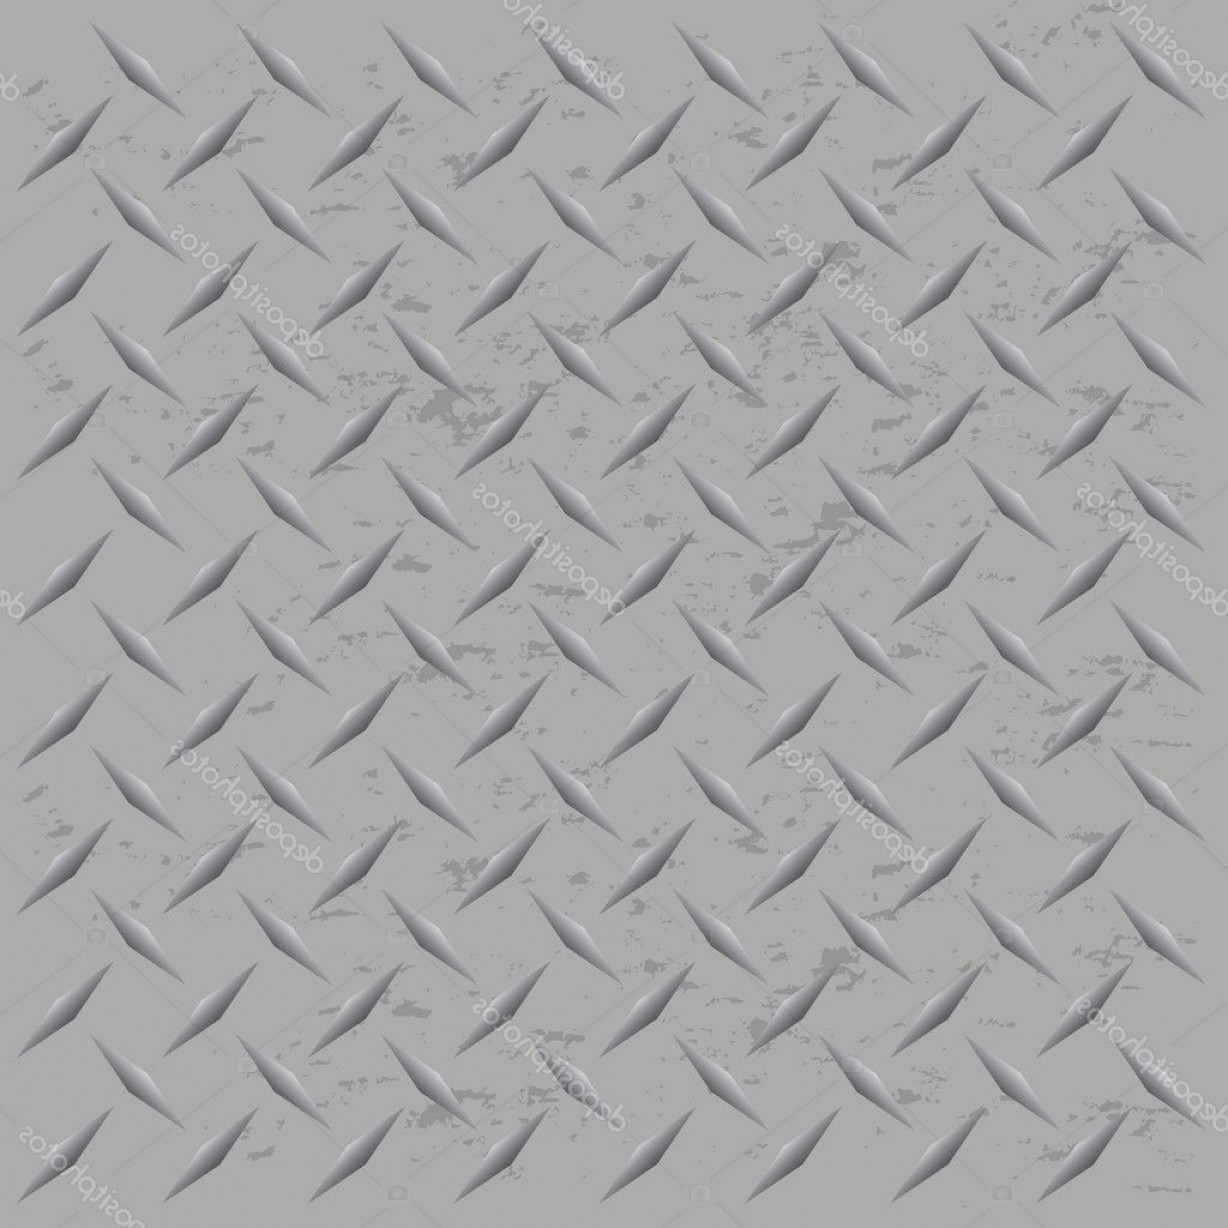 Diamond Plate Vector Pattern: Stock Illustration Worn Diamond Plate Vector